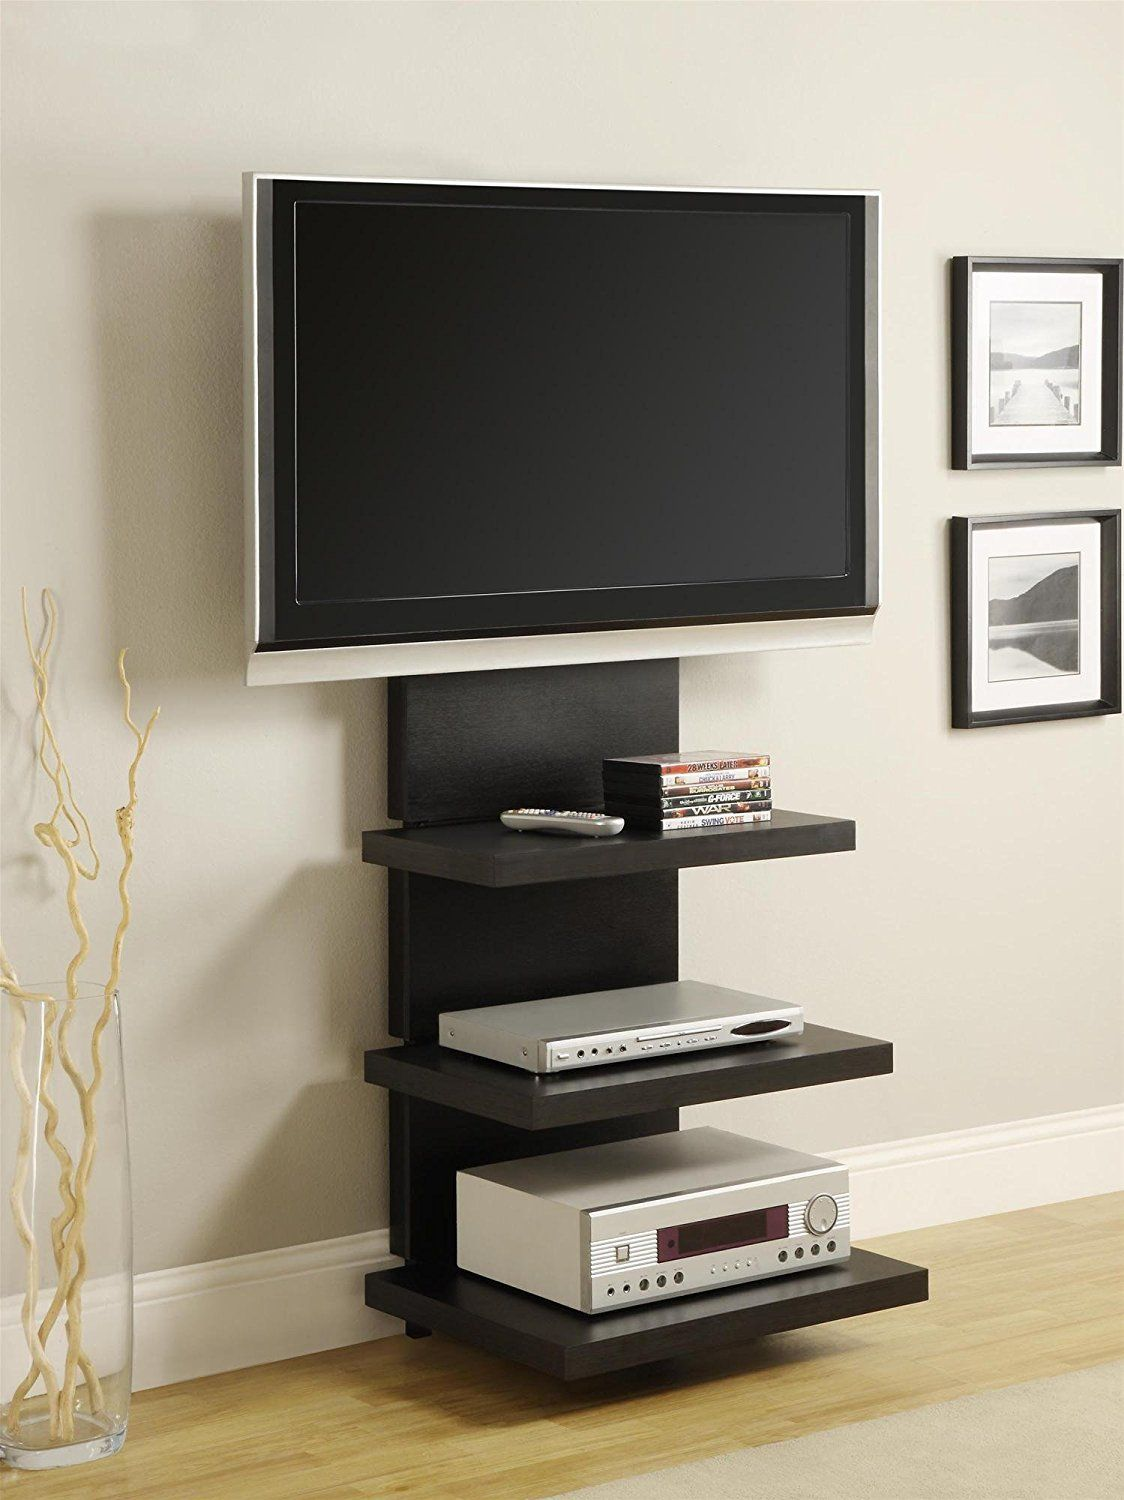 amazon com altra furniture hollow core altramount tv stand with mount for tvs up to 60 inch black espresso kitchen dining